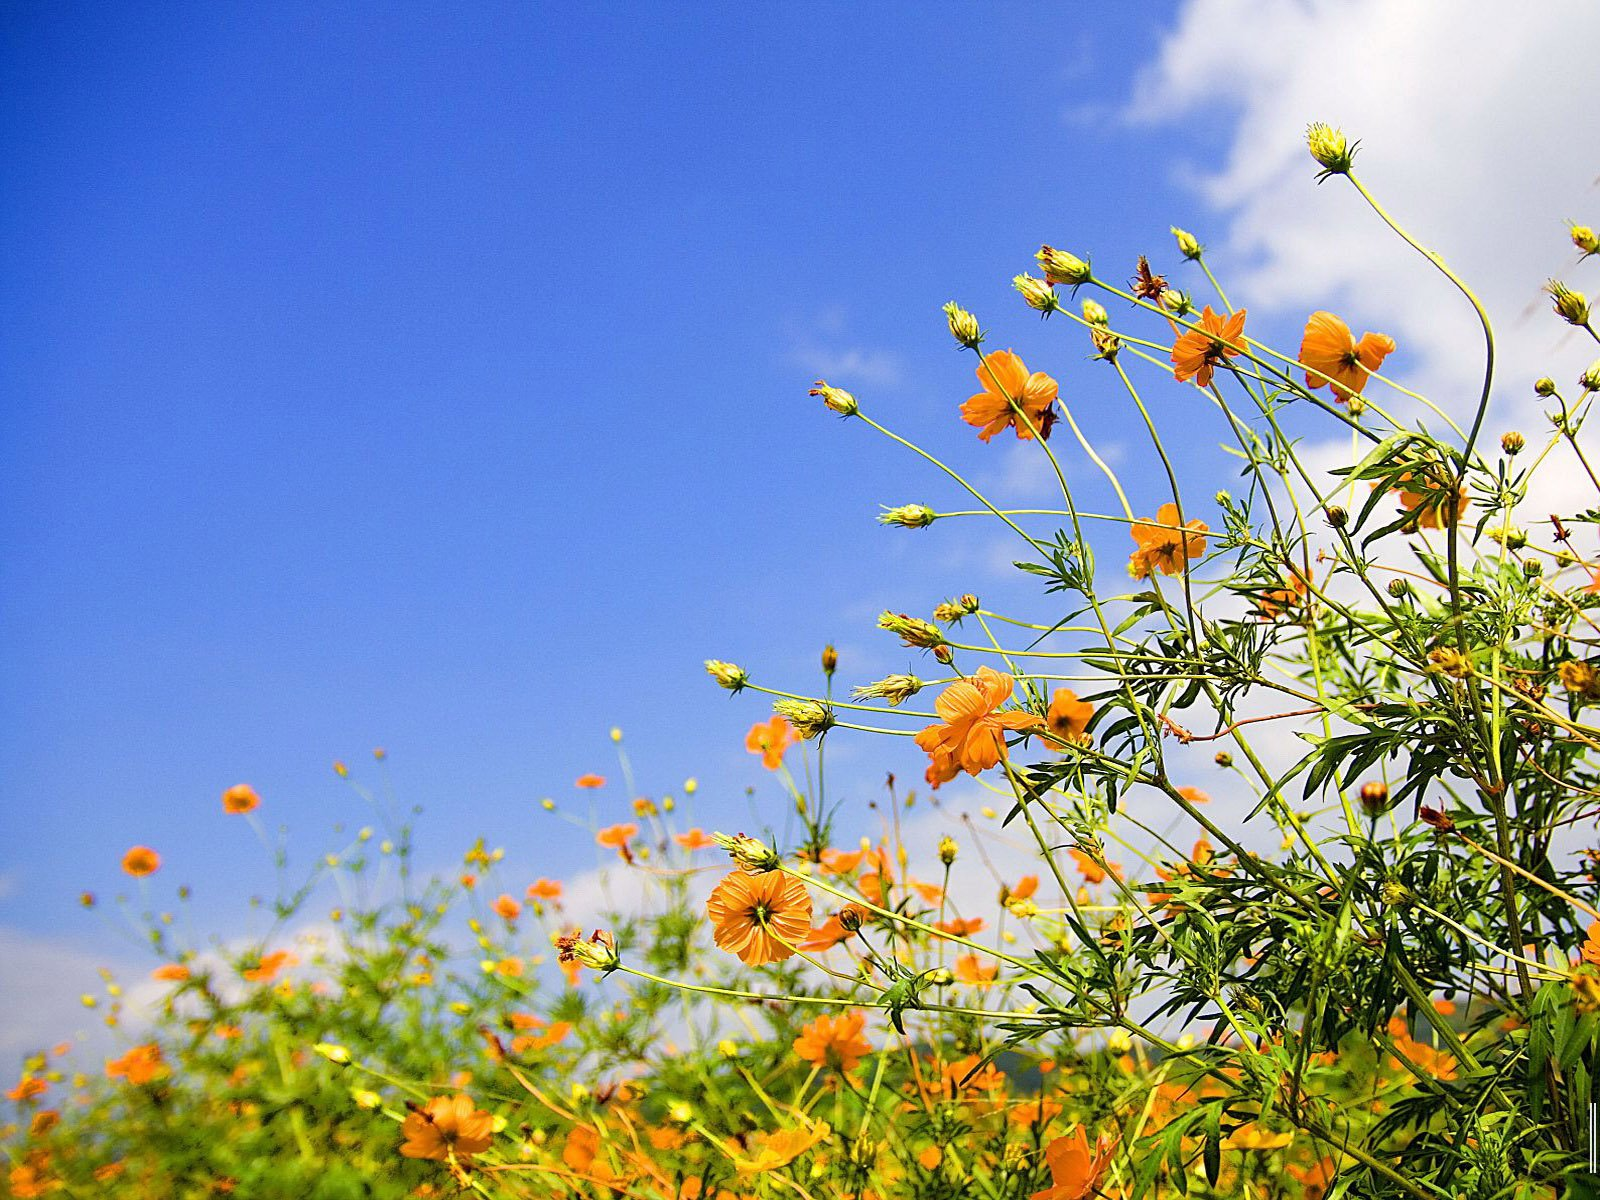 Top Spring Desktop Wallpaper Widescreen Wallpapers 1600x1200